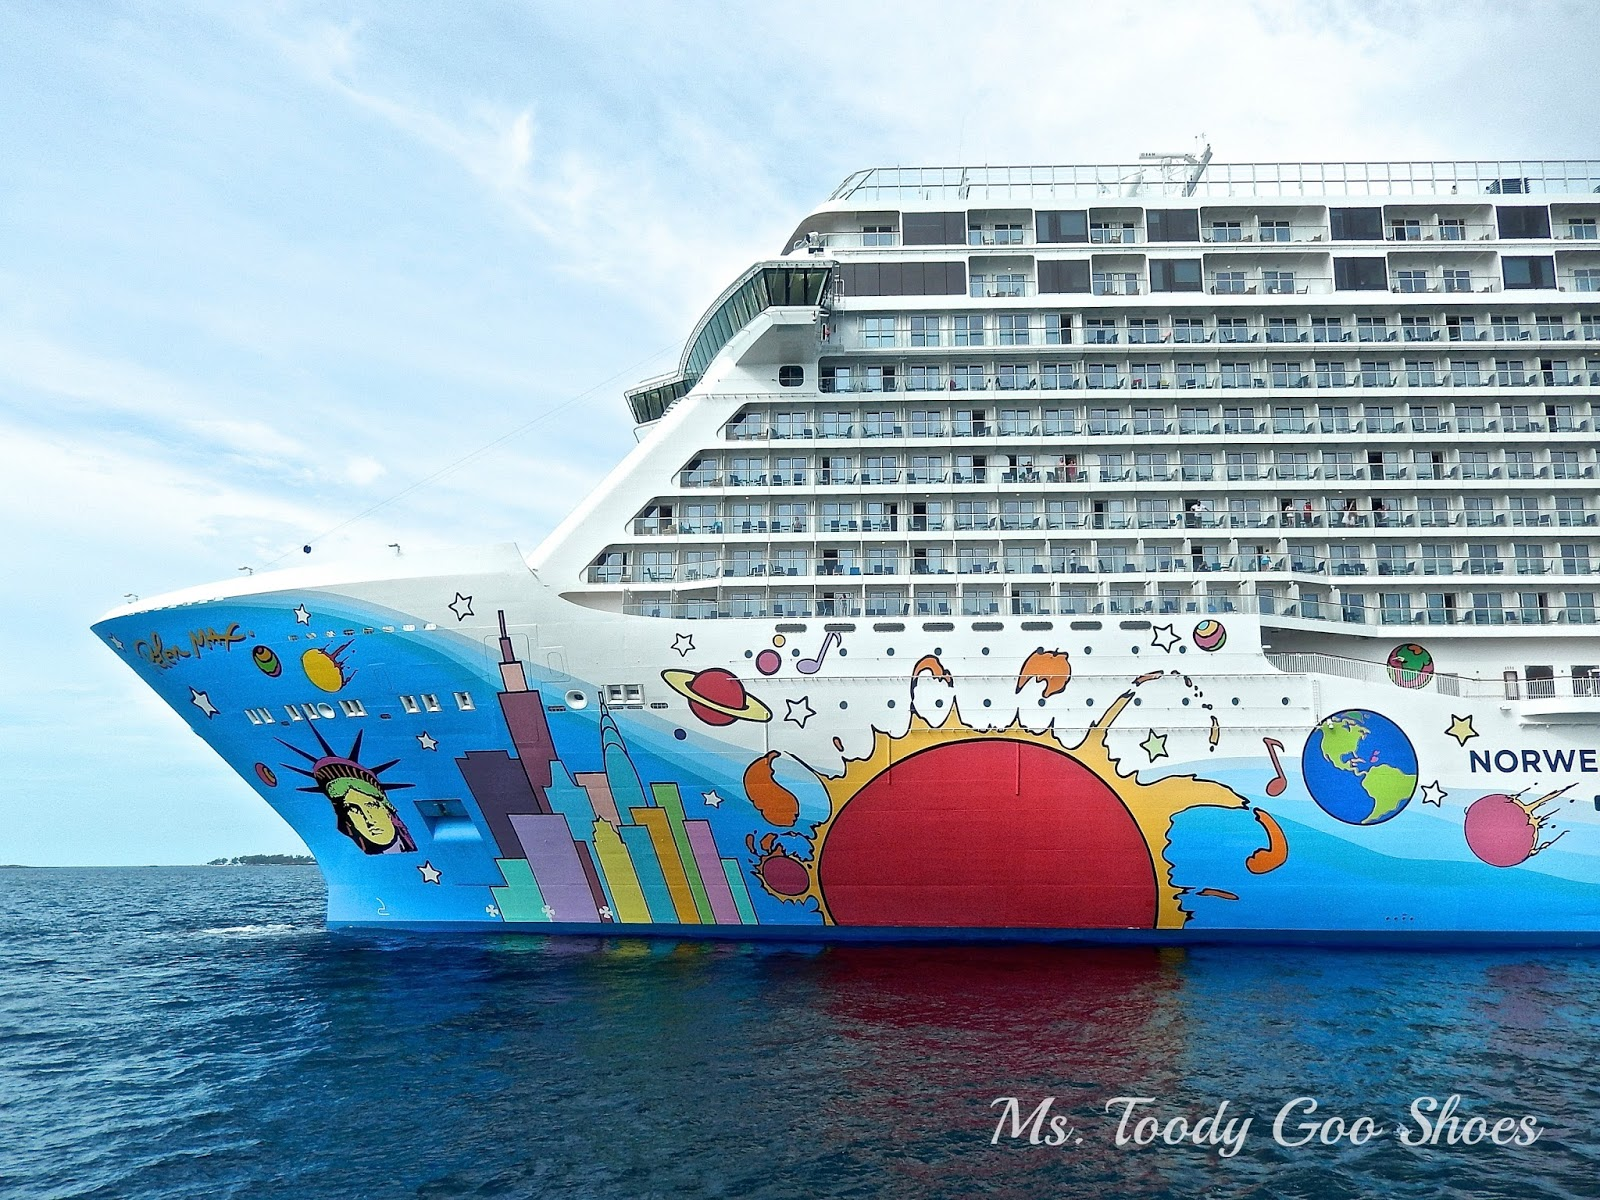 Norwegian Breakaway Cruise Ship  --- Ms. Toody Goo Shoes